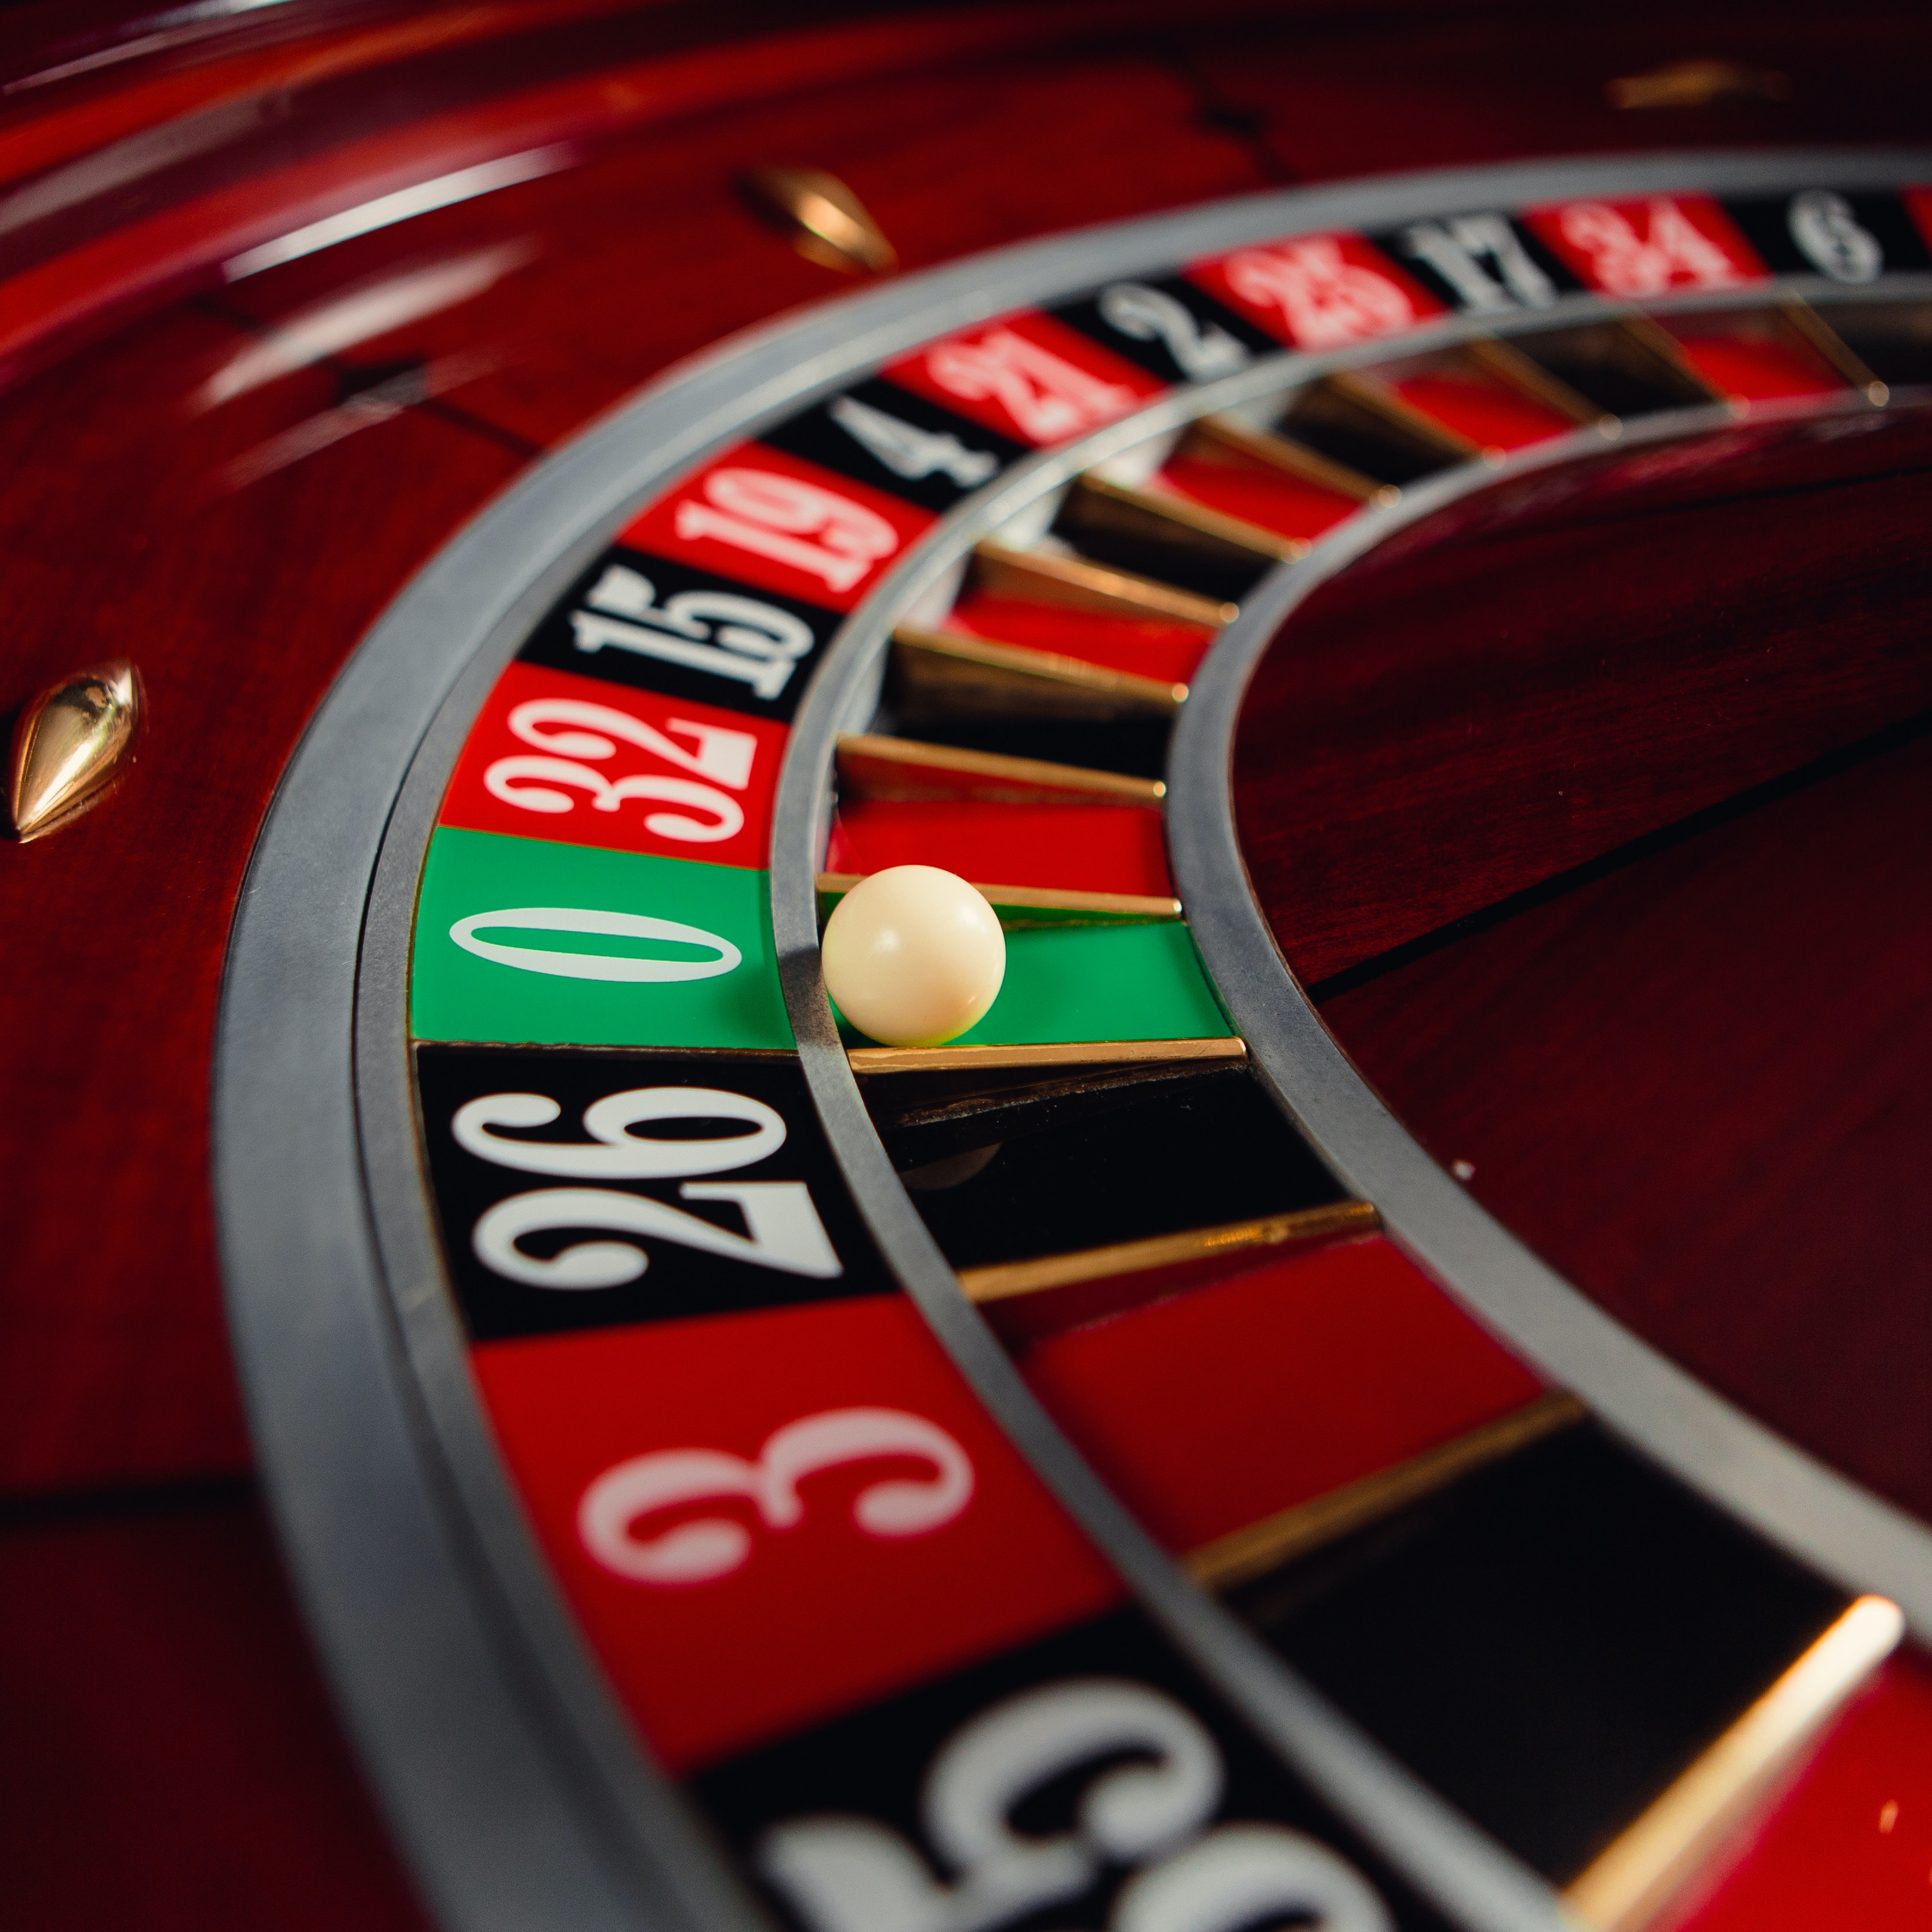 Roulette payout biggest casino 12243